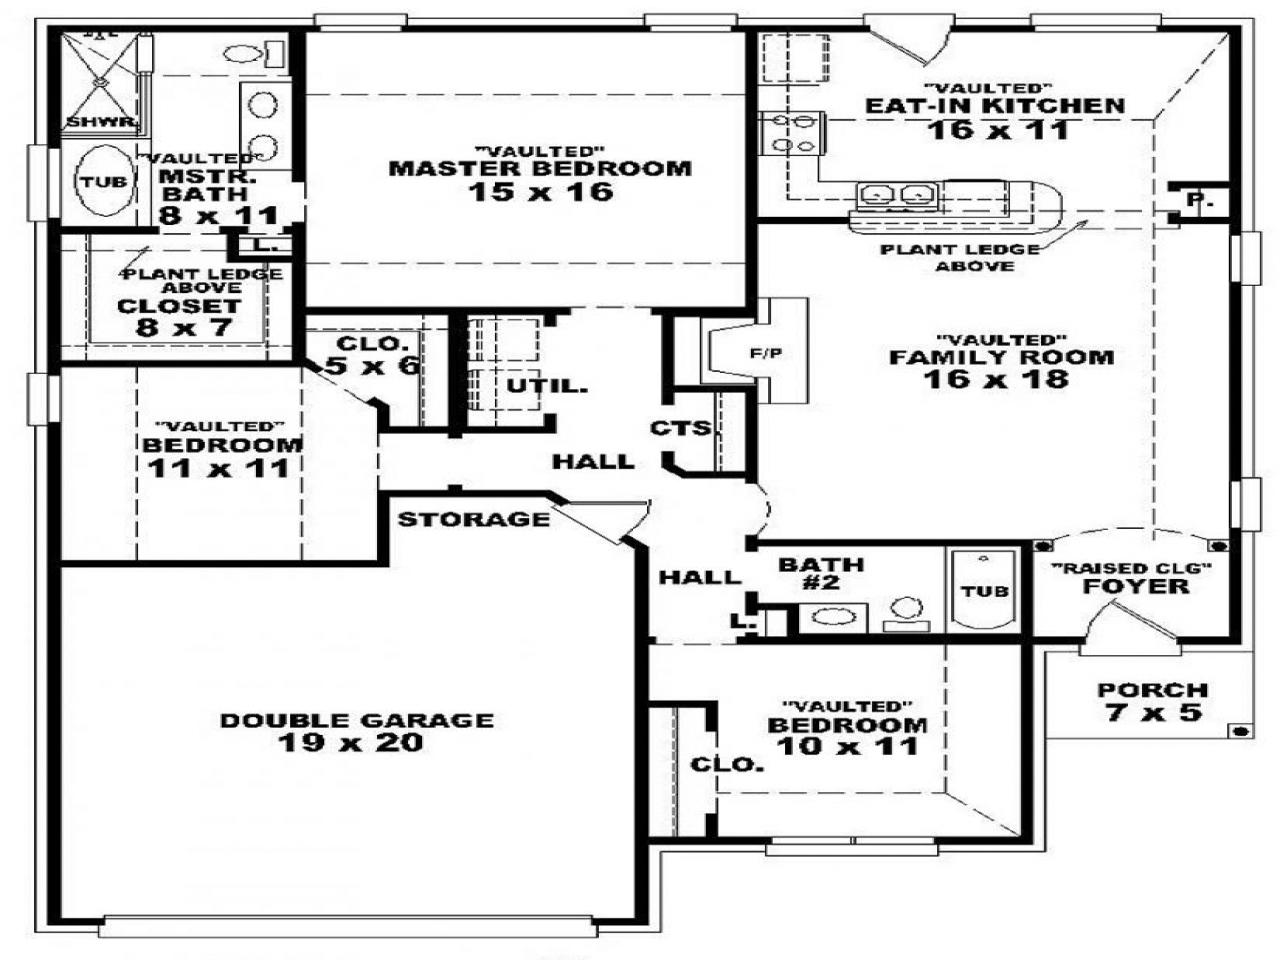 3 bedroom 2 bath house plans 1 level 3 bedroom 2 bath 1 for 1 bed 1 bath house plans